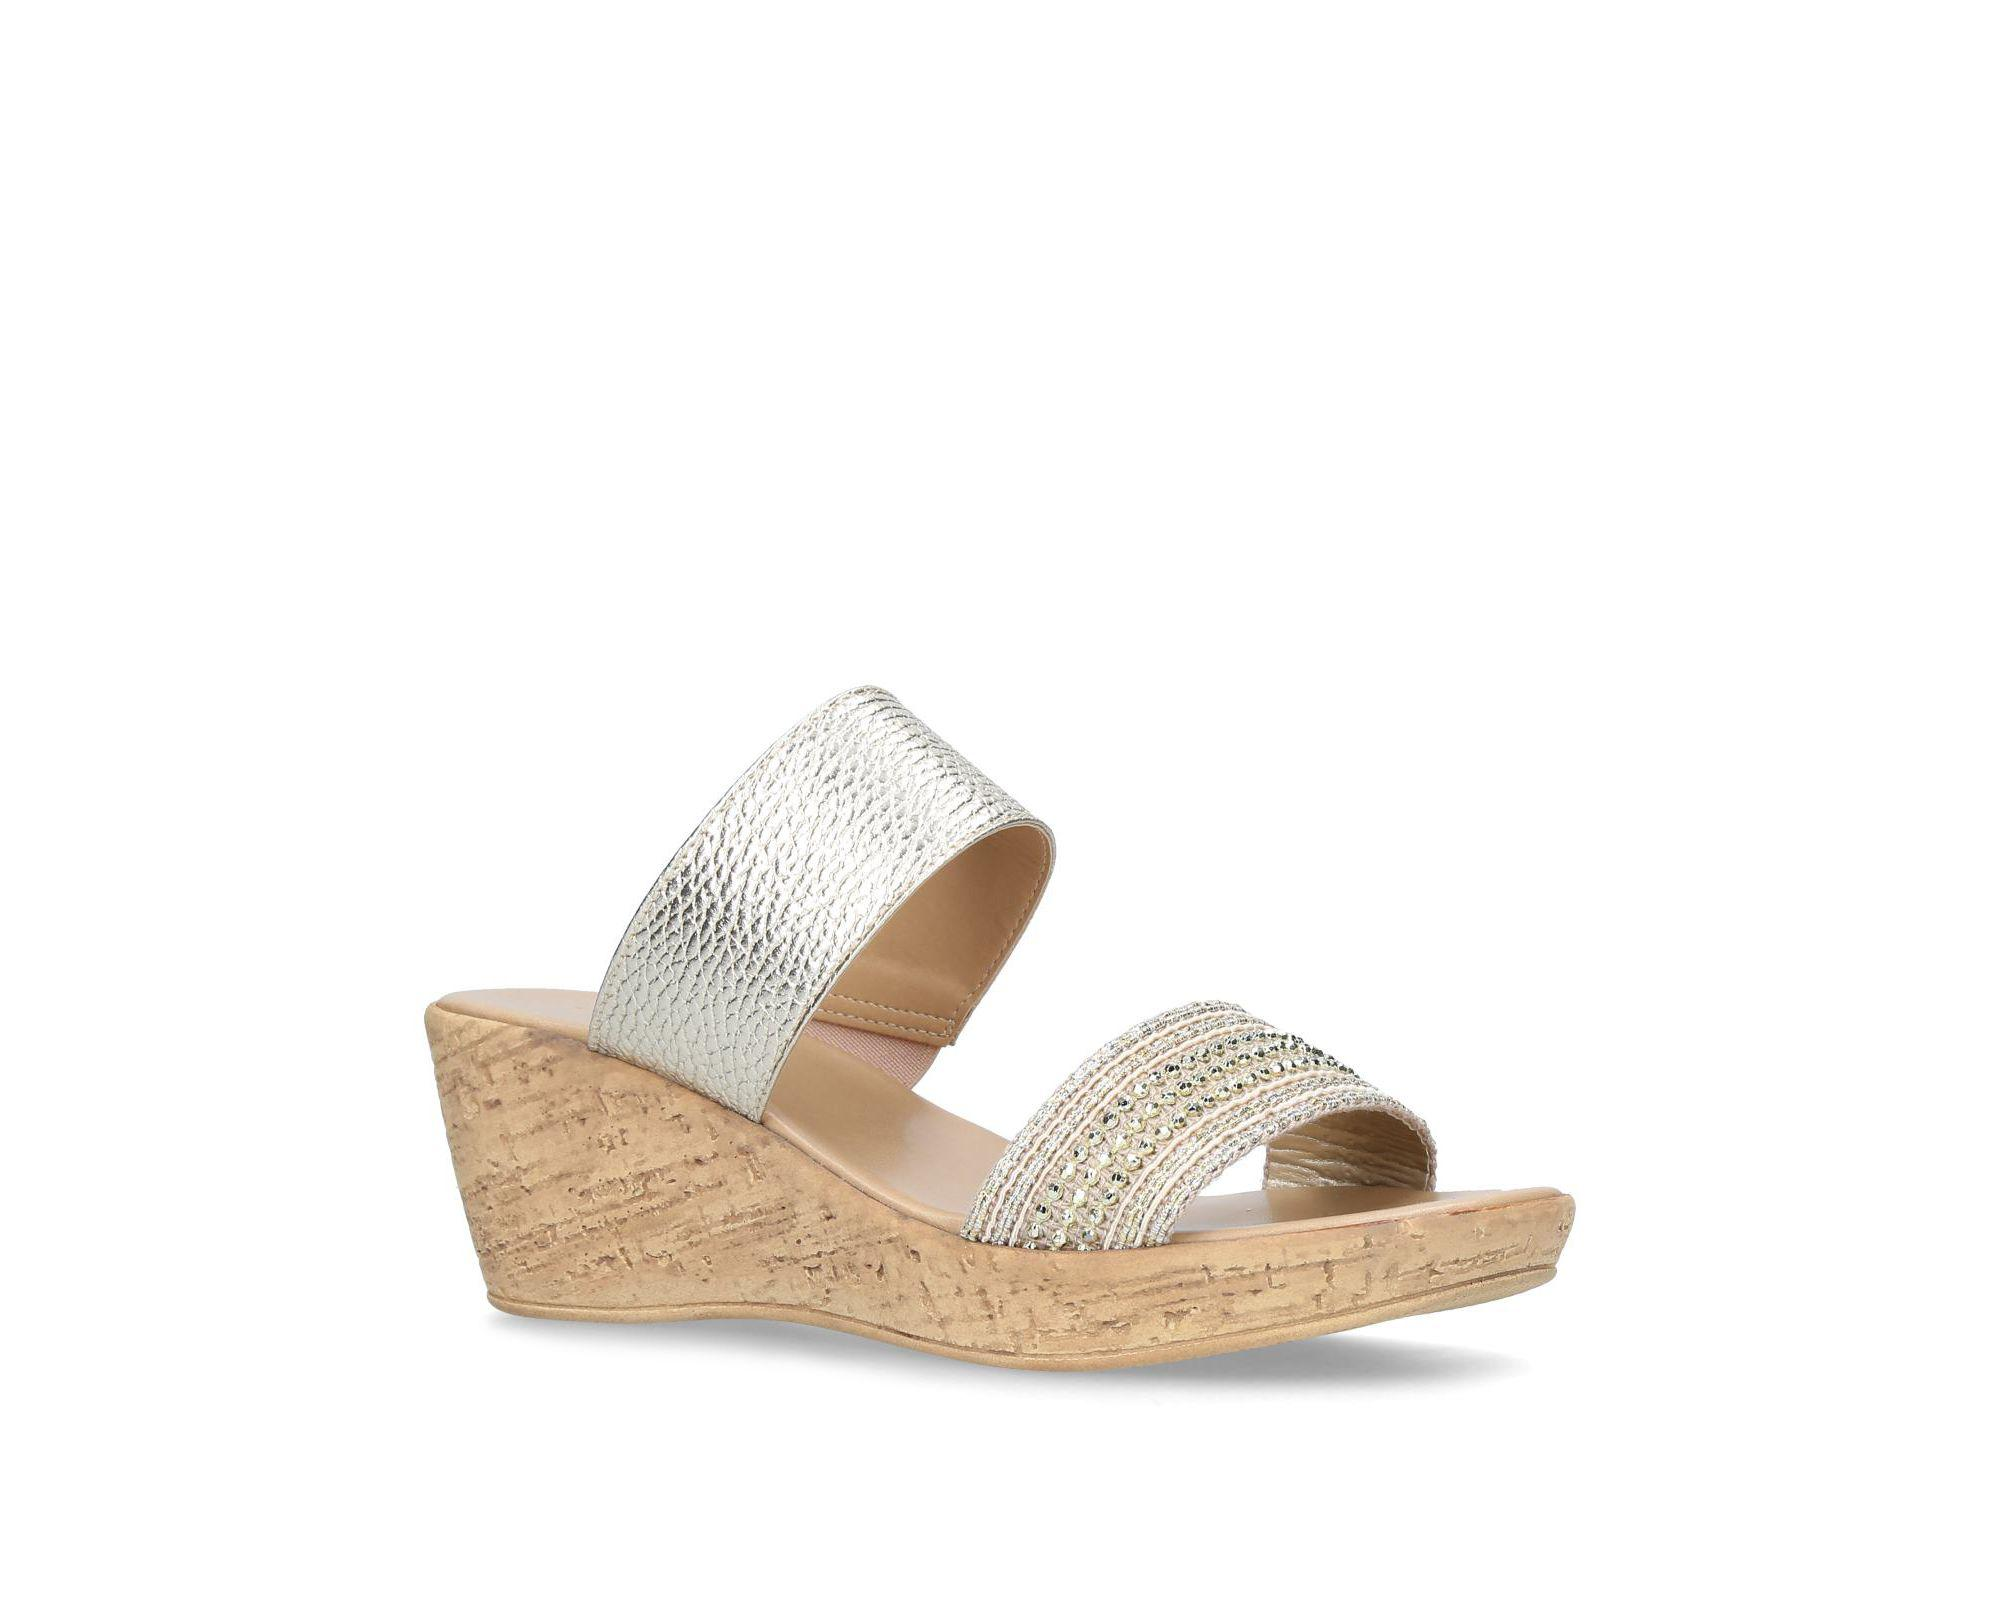 Beige 'Saskia' mid heel wedge sandals free shipping best prices best prices cheap online ImJyDs